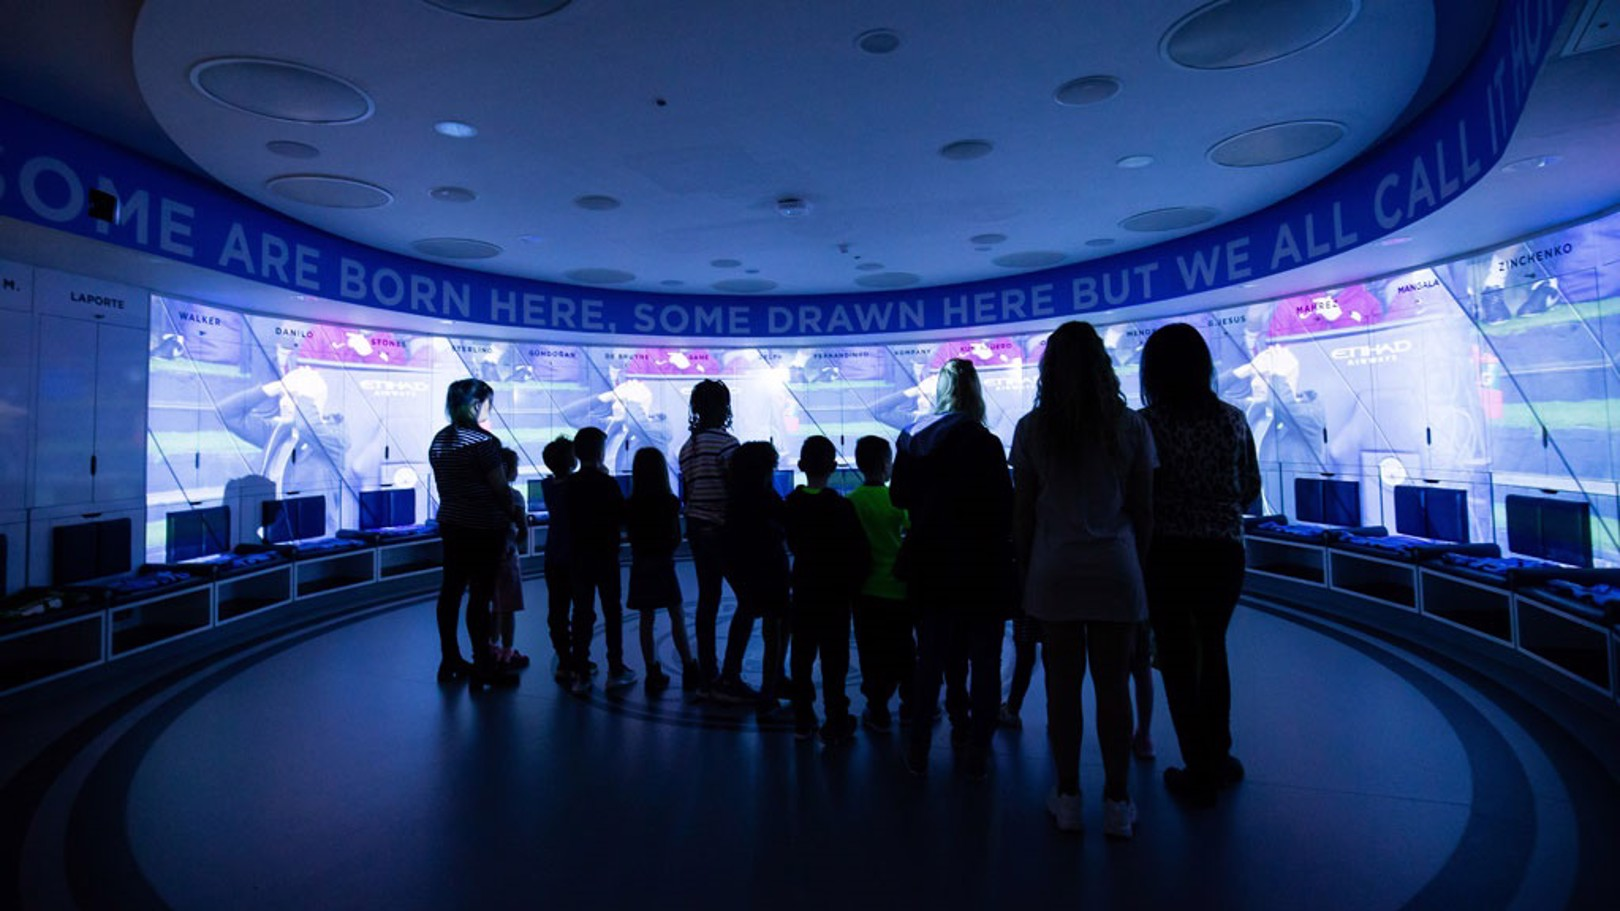 125: City have launched a new club tour